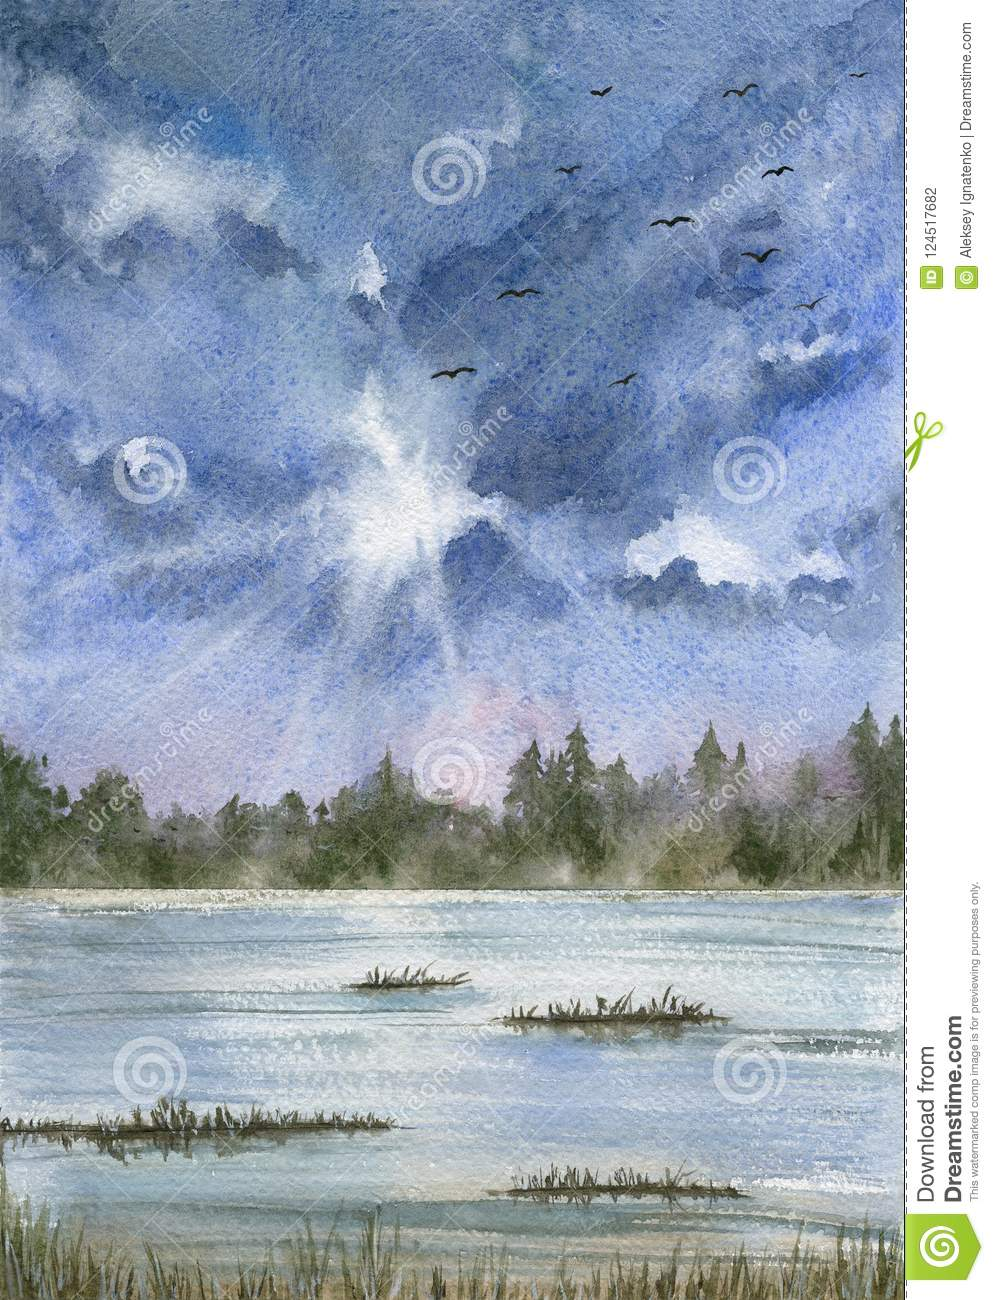 Landscape with blue cloudy sky, expanse of water and forest.